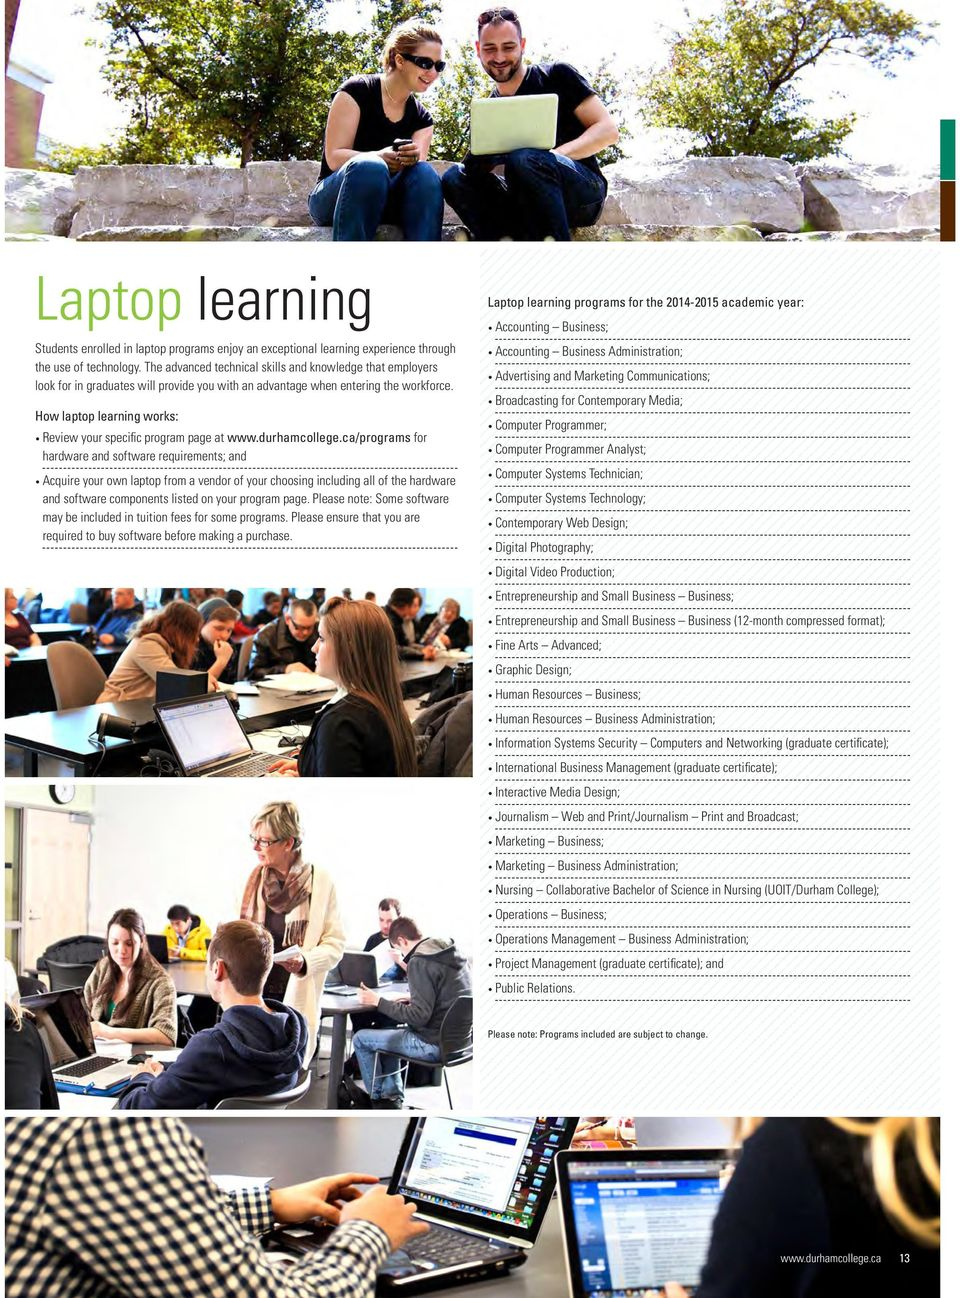 How laptop learning works: Review your specific program page at www.durhamcollege.